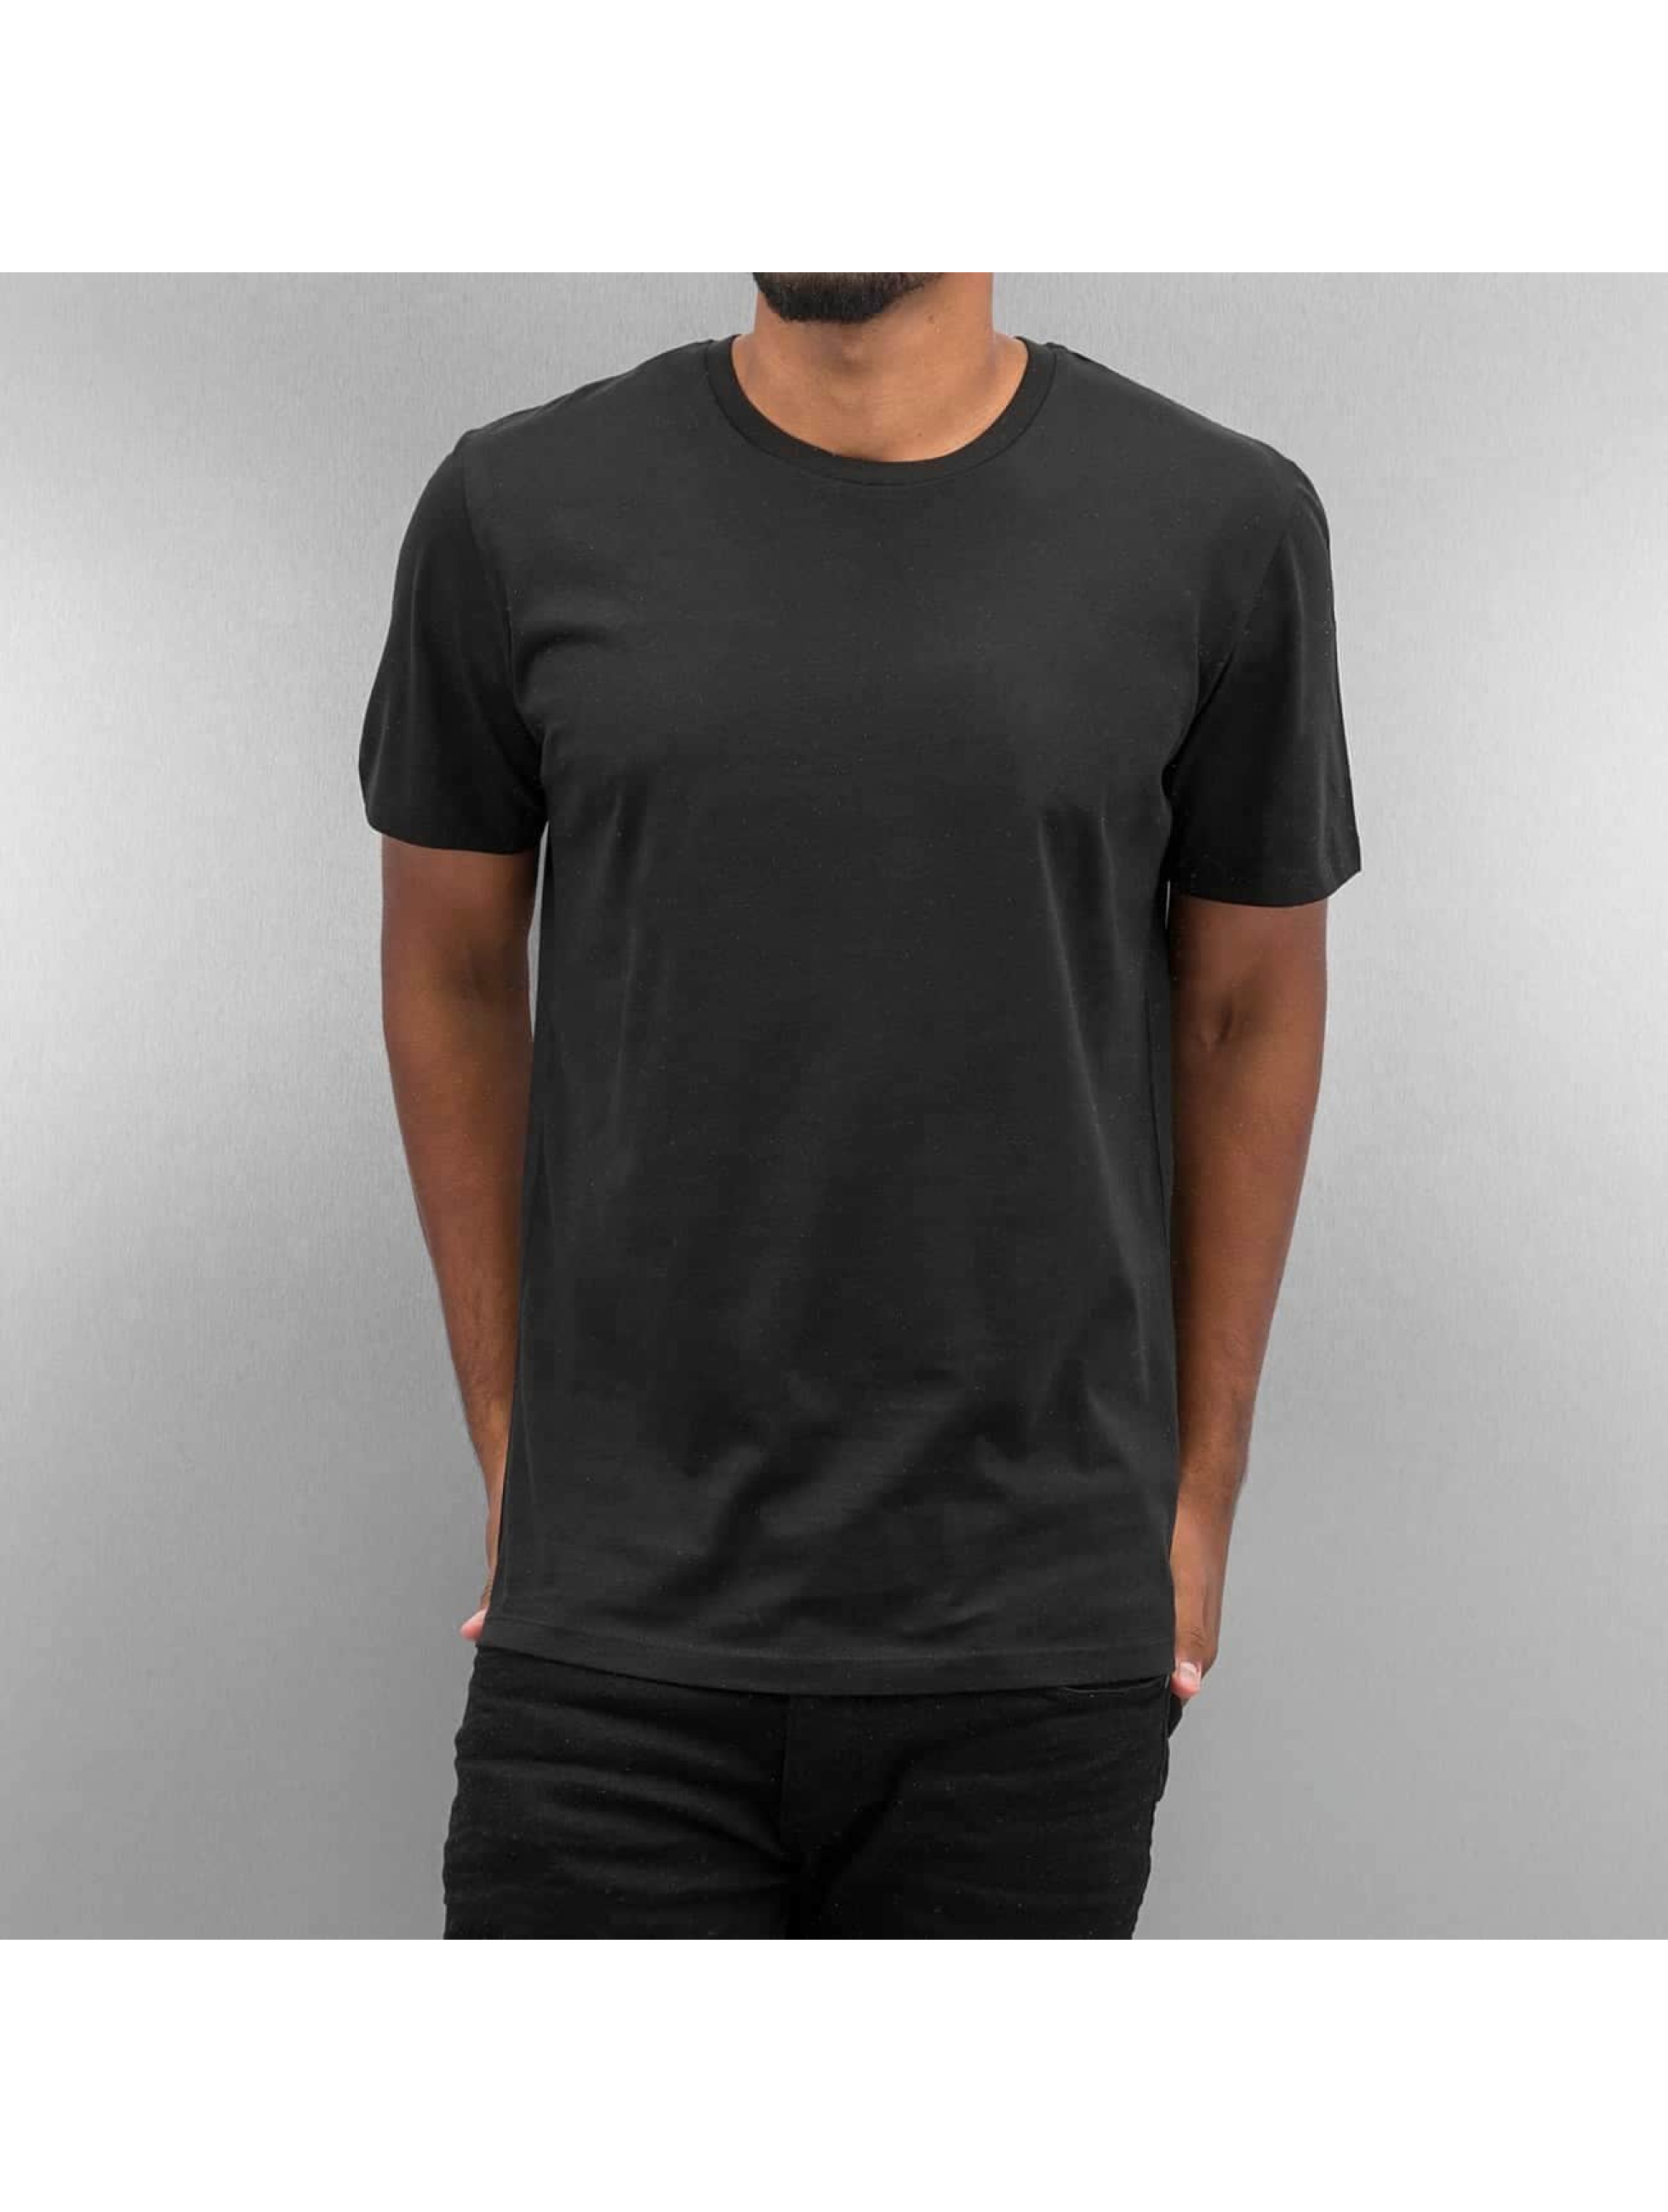 Jack & Jones t-shirt jcoTable zwart